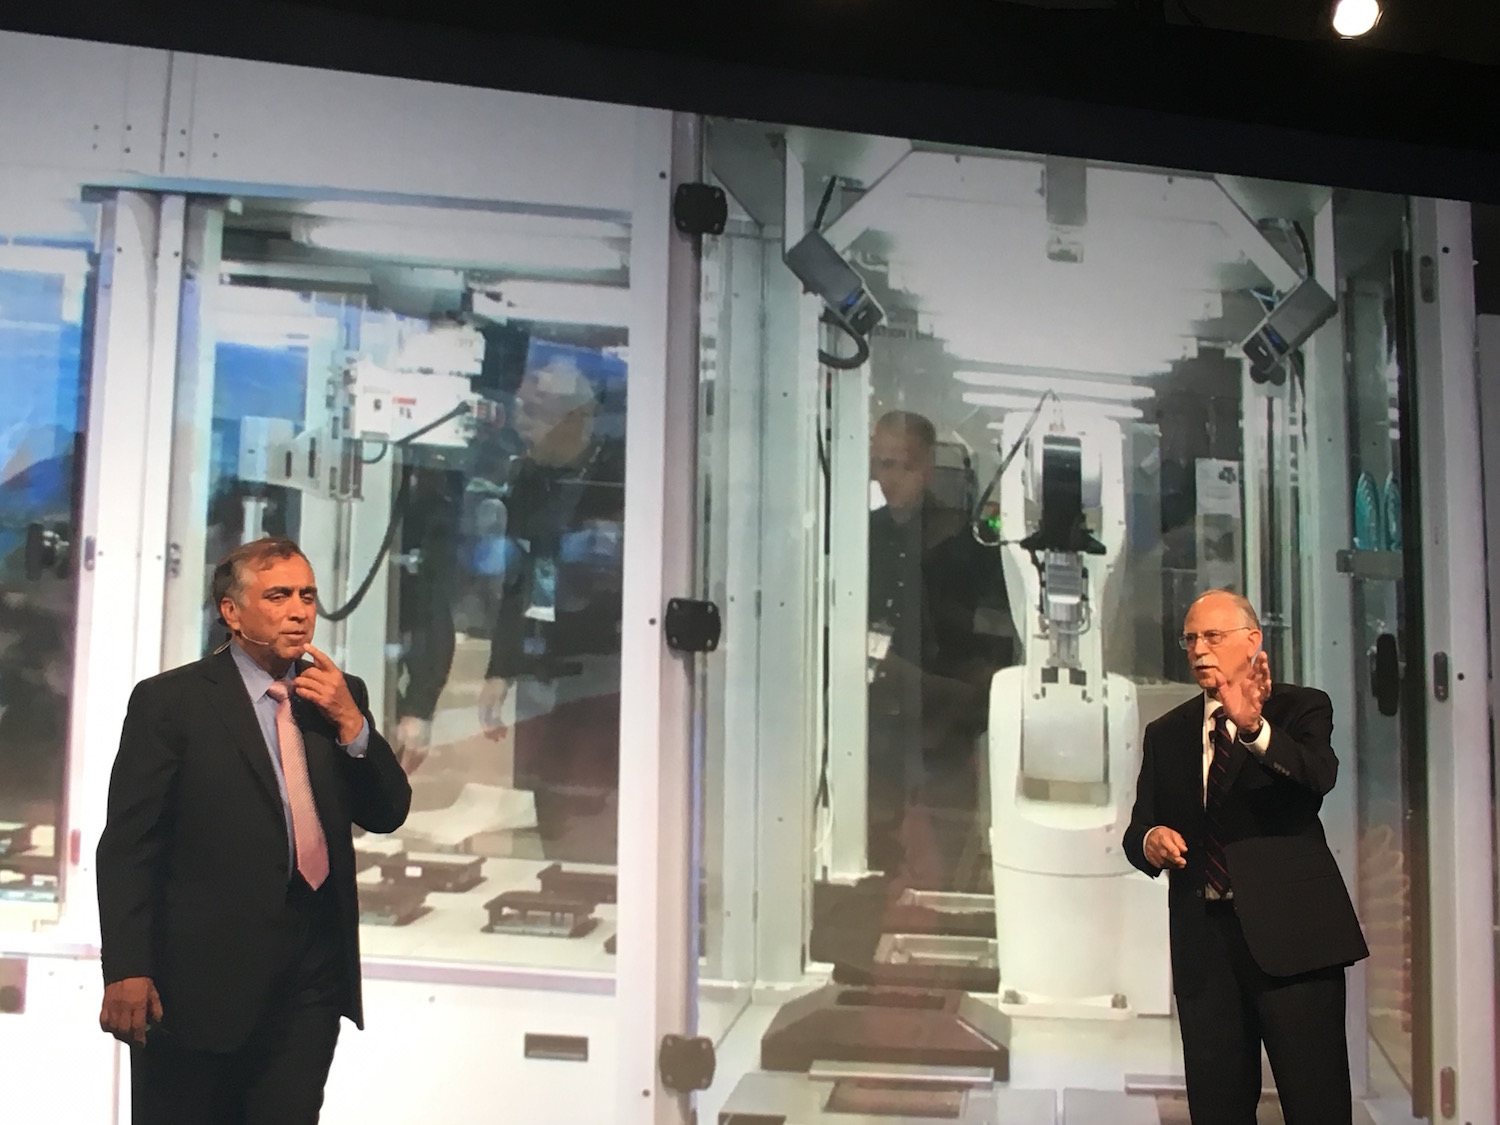 3D Systems CEO Vyomesh Joshi and Founder Chuck Hull introducing the Figure 4